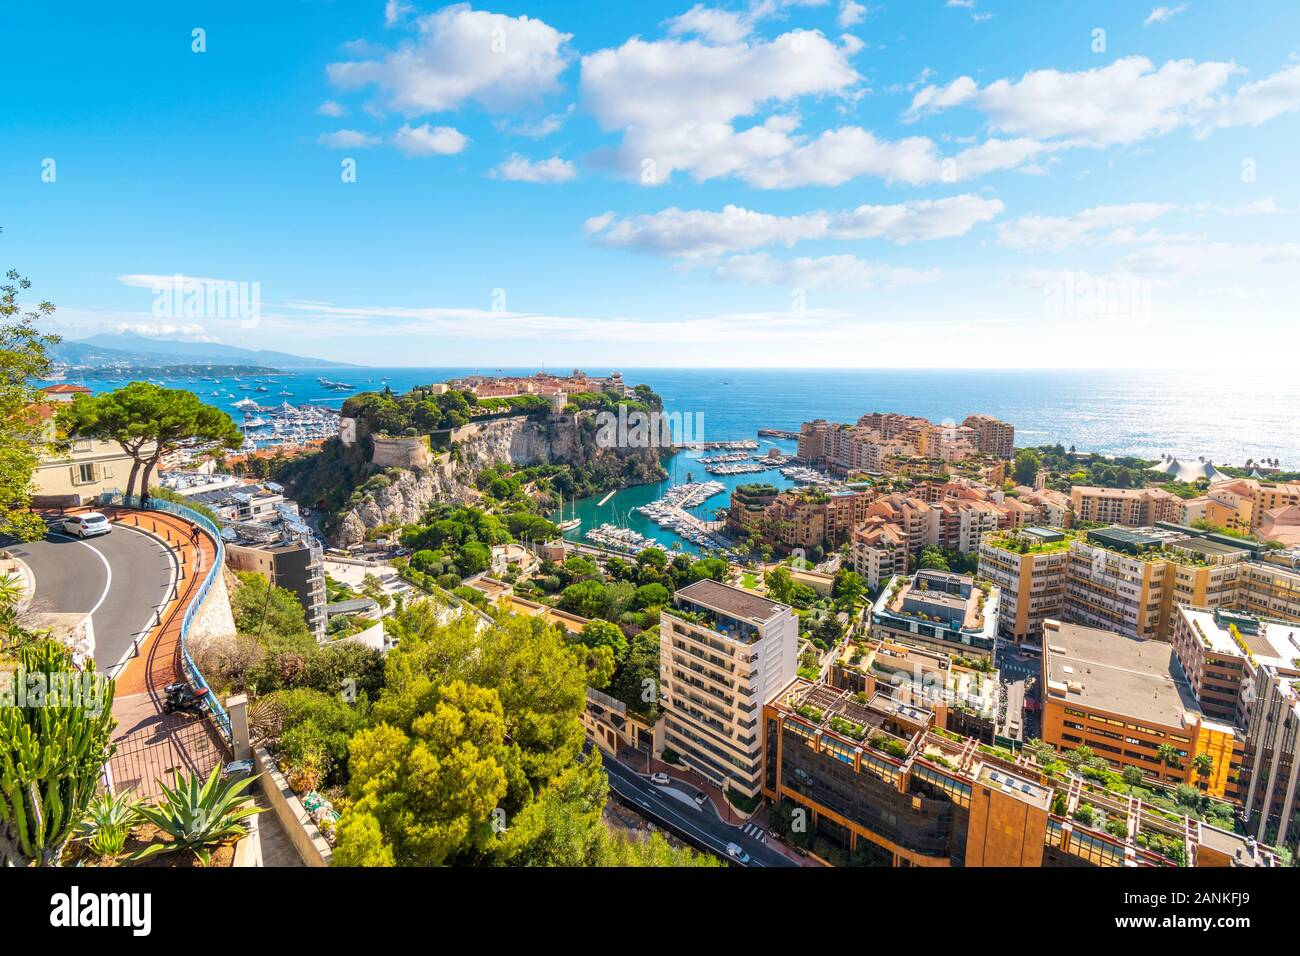 View of the Mediterranean Sea, the marina, port, cities of Monte Carlo and Fontvieille, and the rock of Monte Carlo, Monaco, from the Exotic Gardens Stock Photo